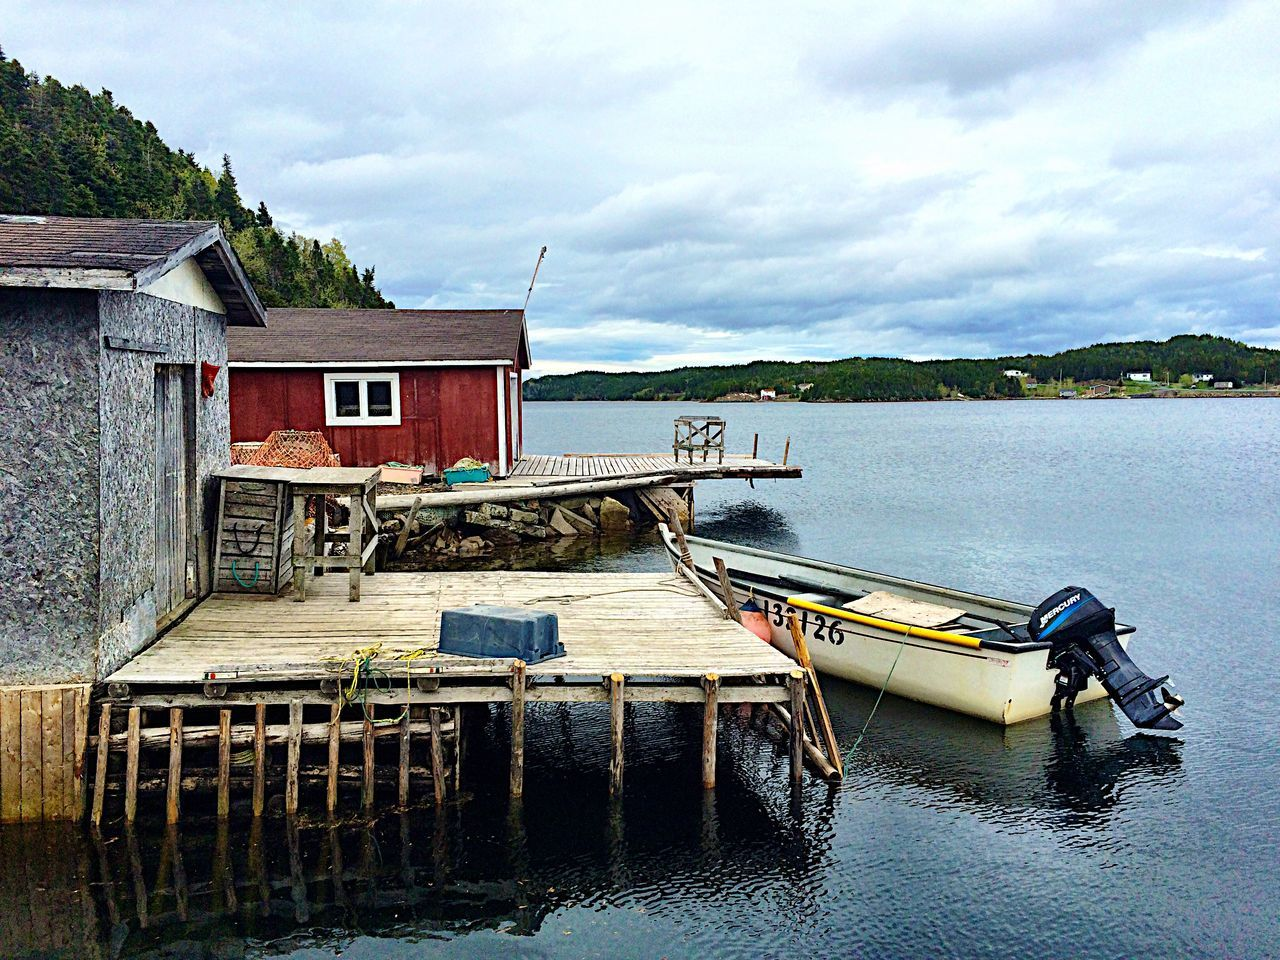 Fishermans life - iPhone 5S - Newfoundland Canada The Great Outdoors - 2015 EyeEm Awards AMPt_community Sea Nature_collection Seaside Landscape Landscape_Collection Canada Sea And Sky Taking Photos